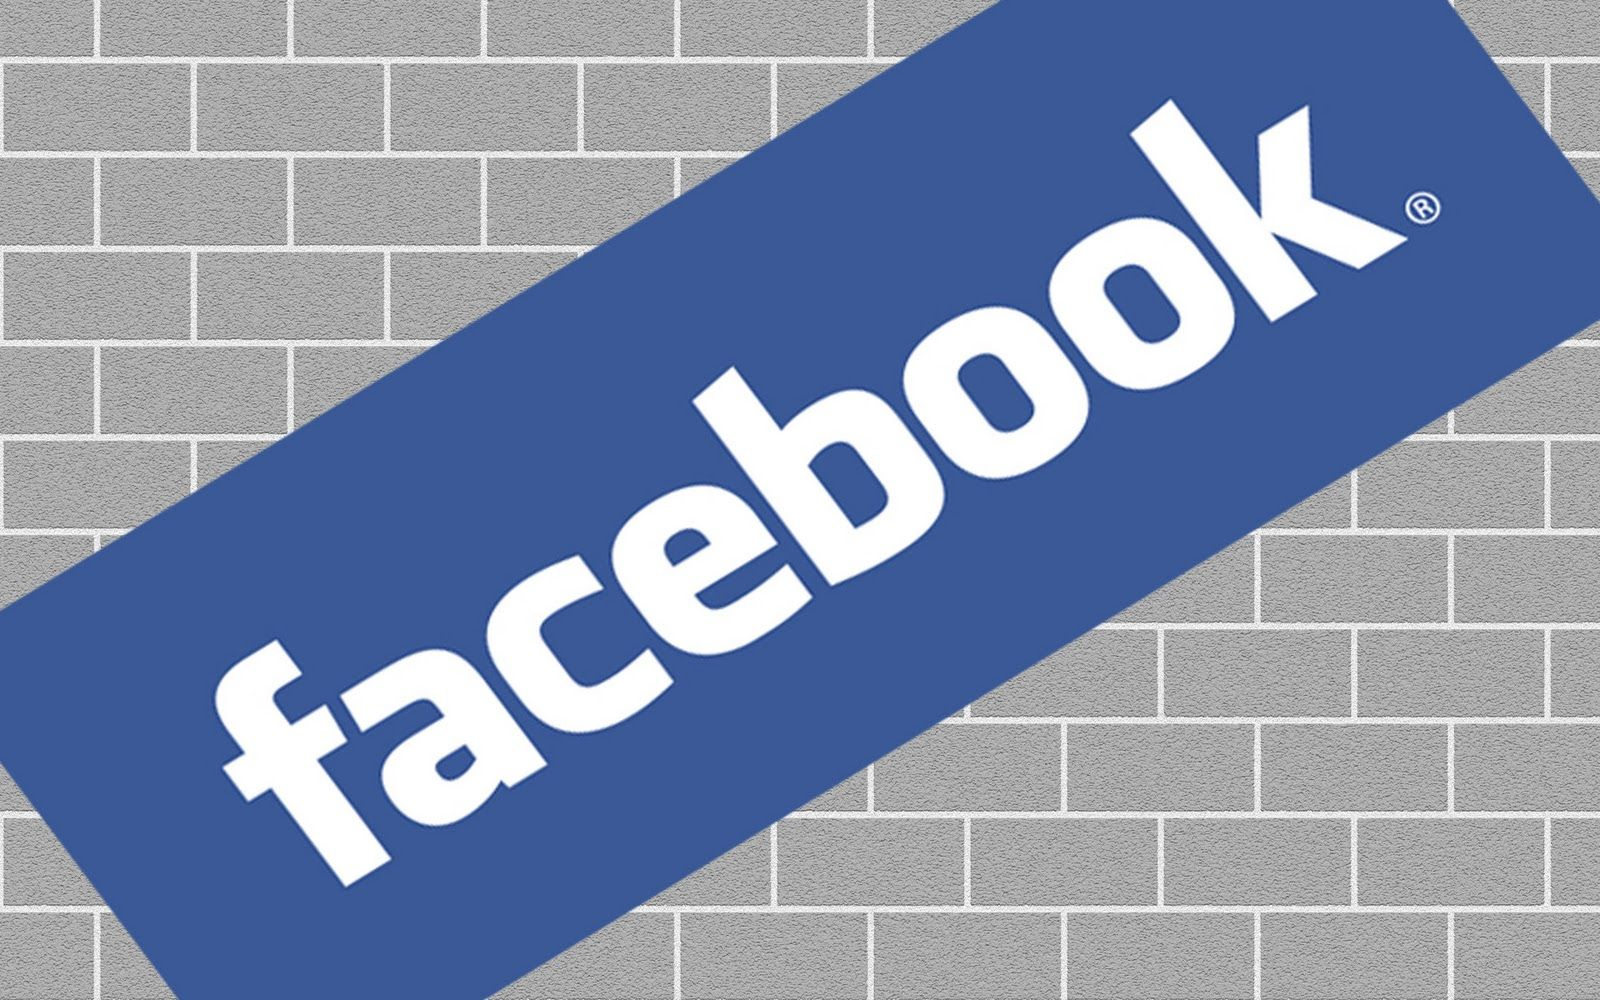 Facebook Wallpapers Backgrounds Hd 19